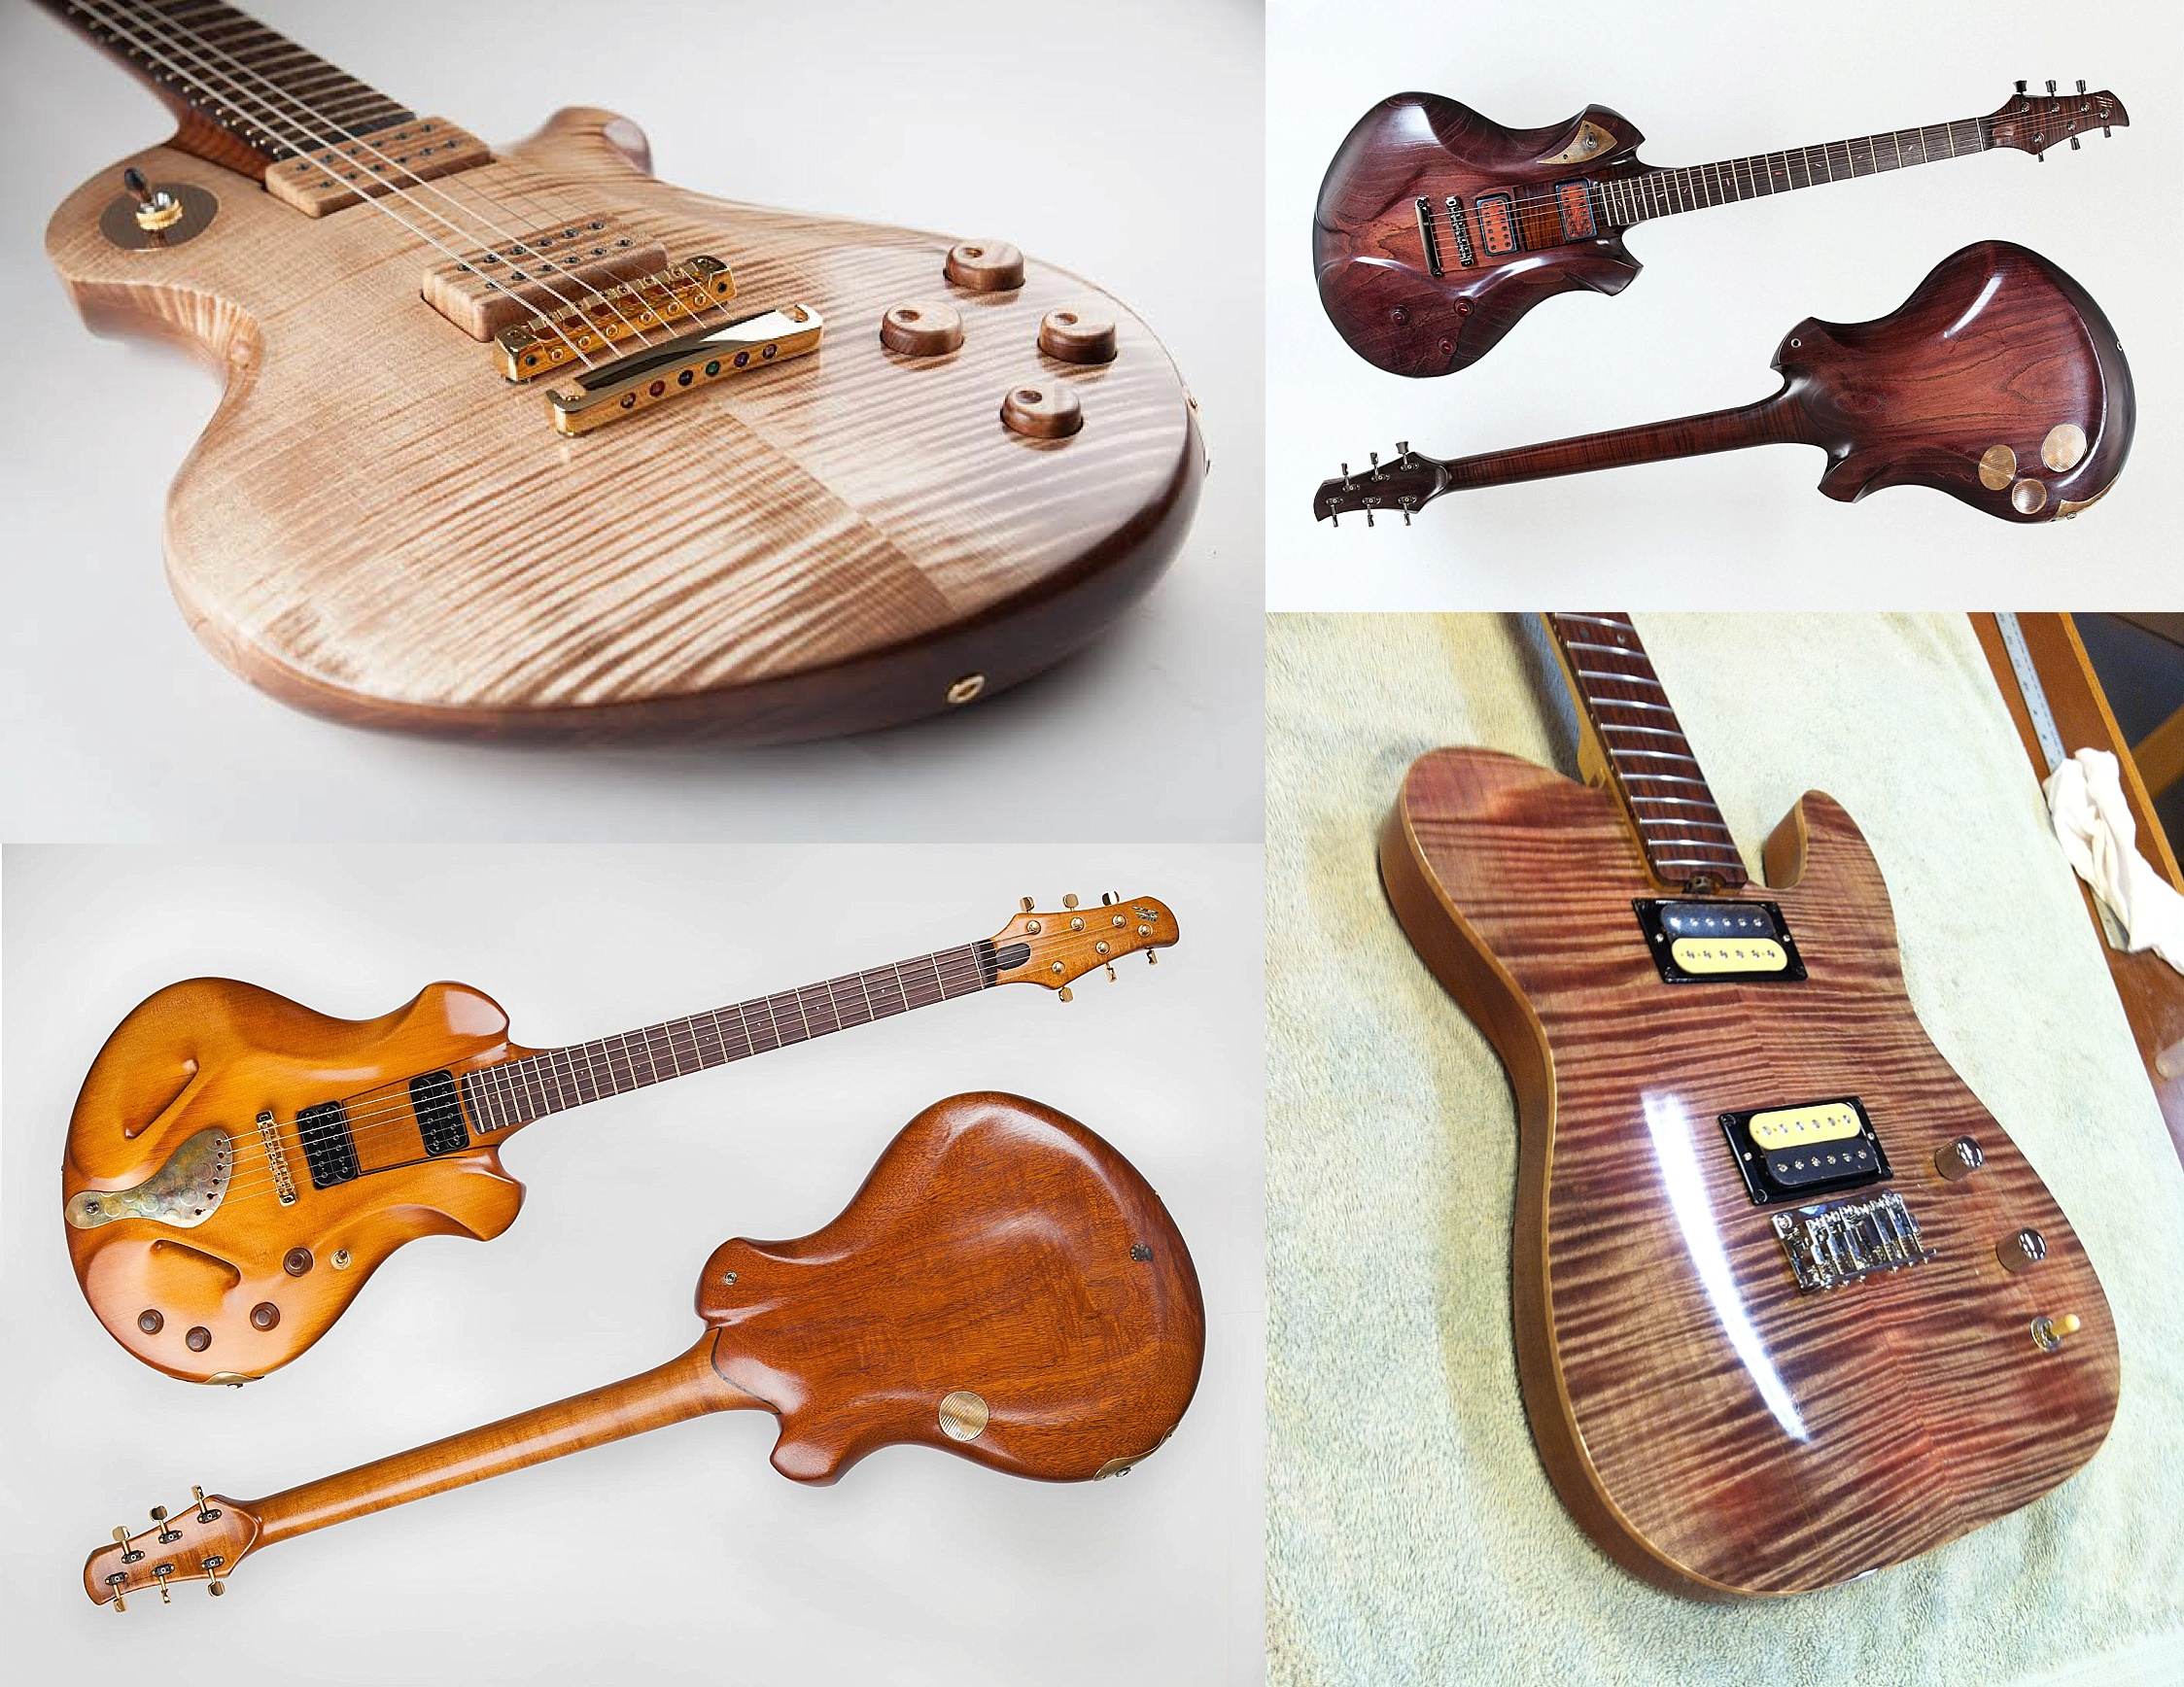 roasted-torrified-guitar-builds.jpg